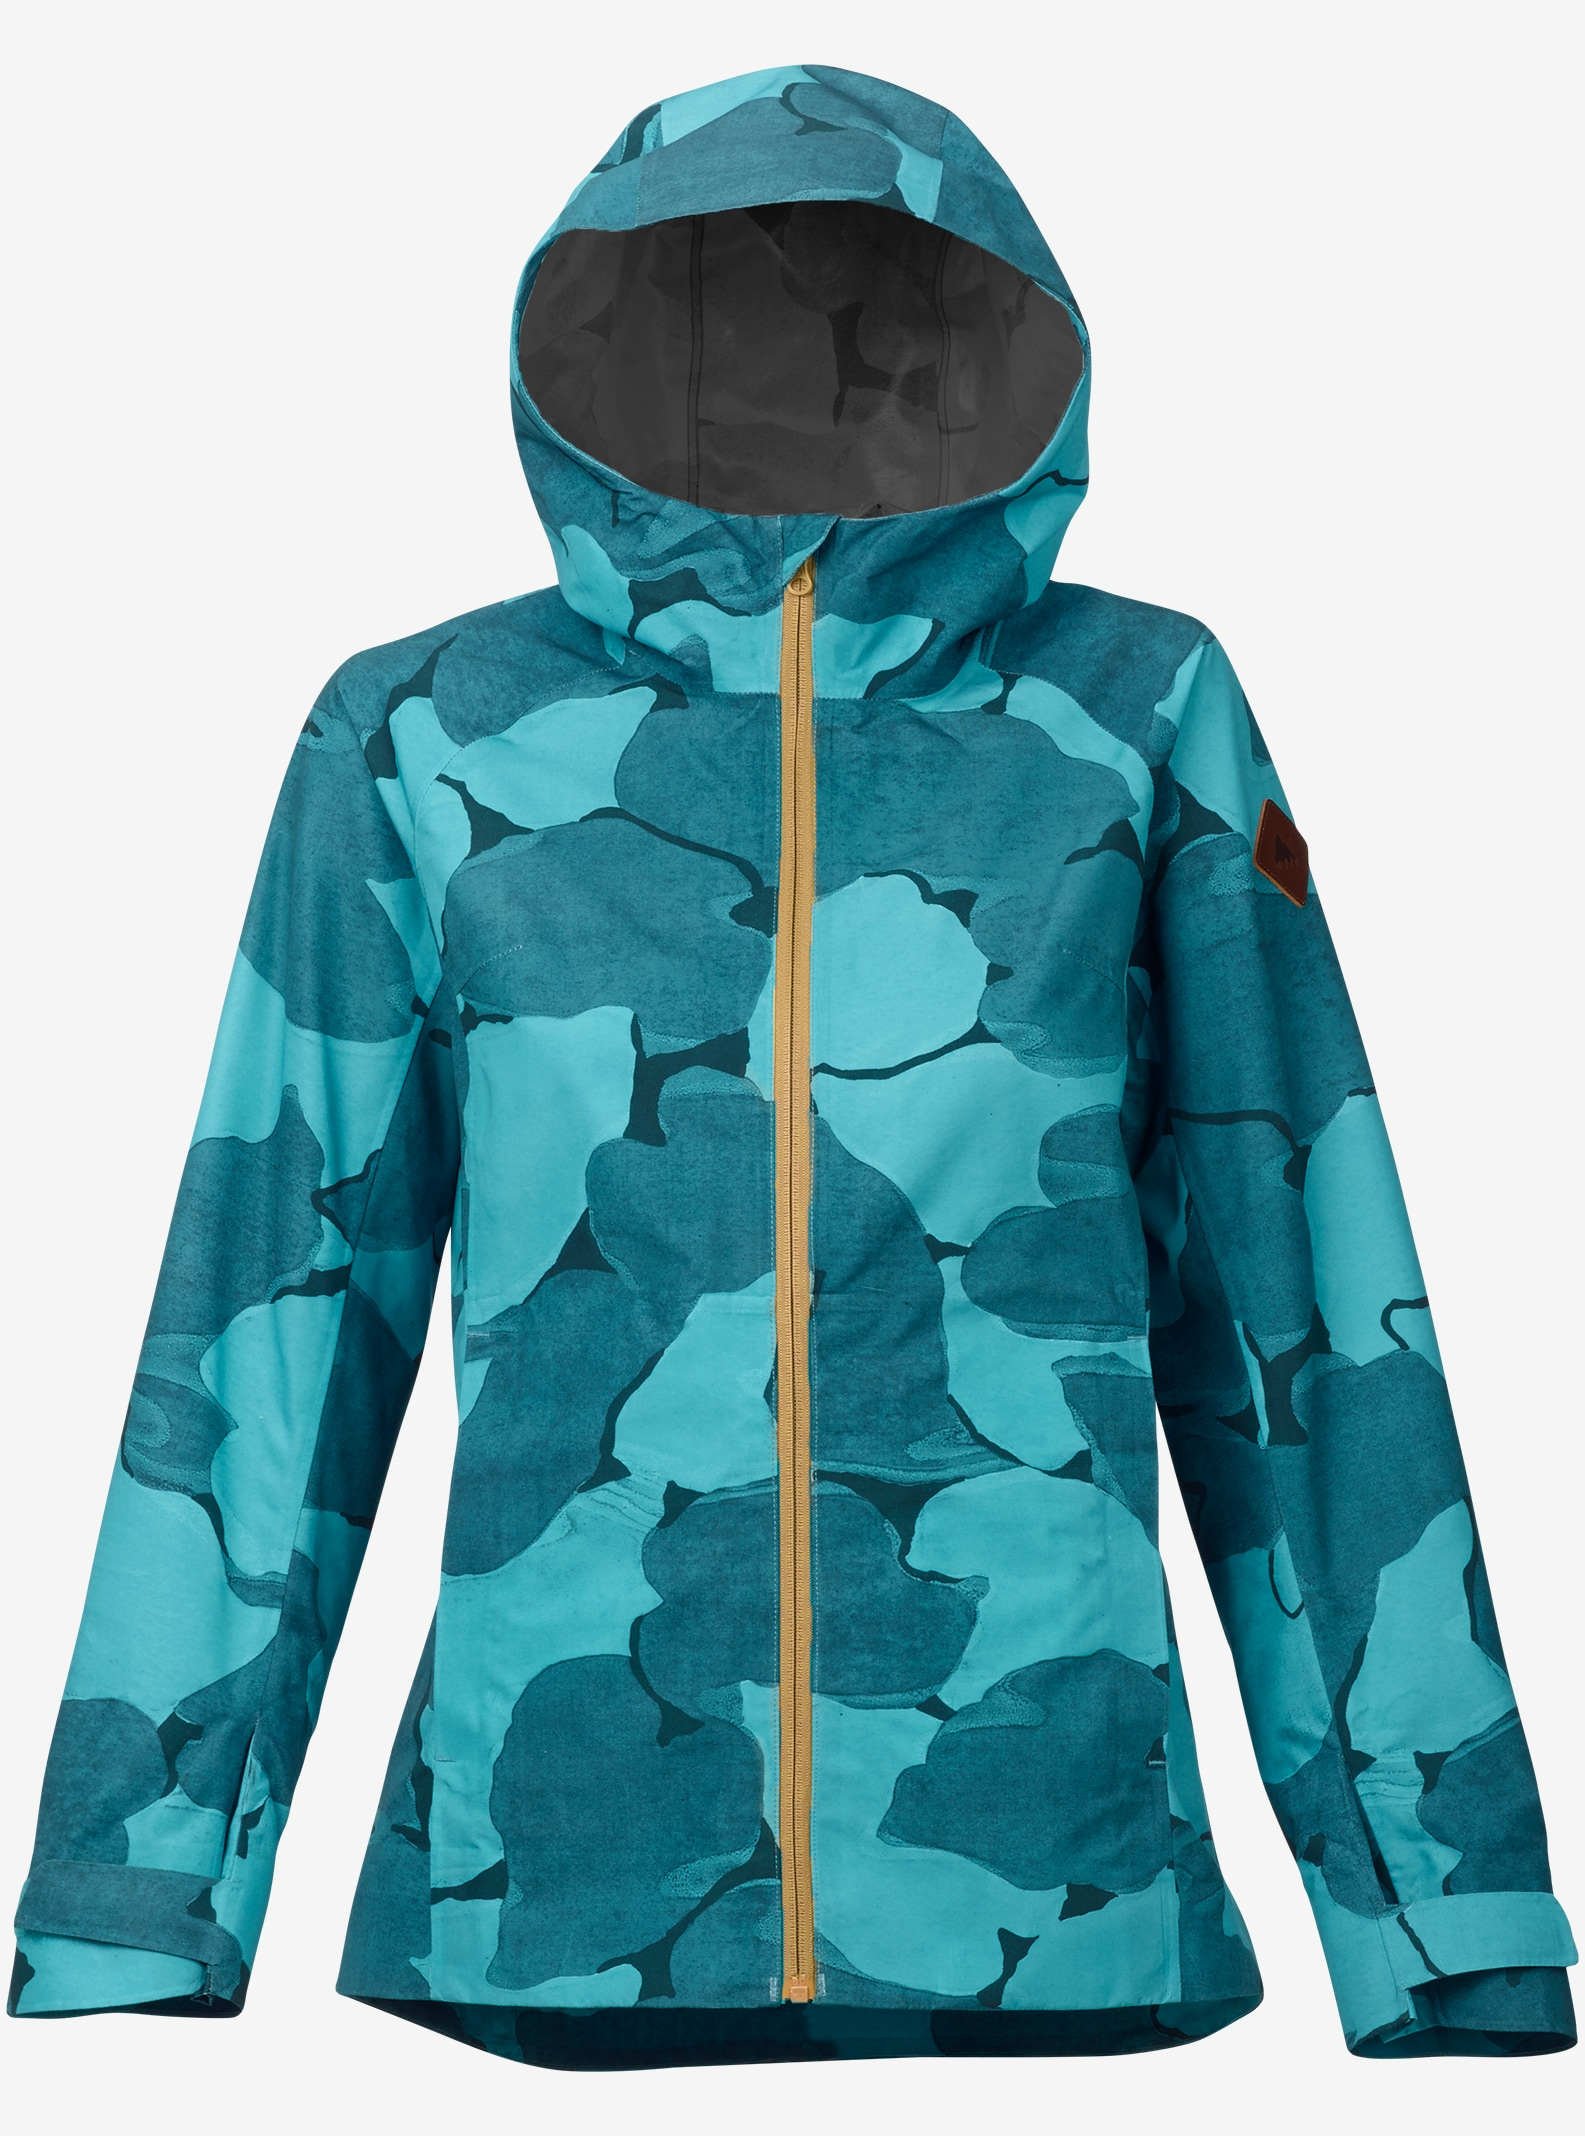 Burton GORE-TEX® 2L Day-Lite Rain Jacket shown in Everglade Pond Camo